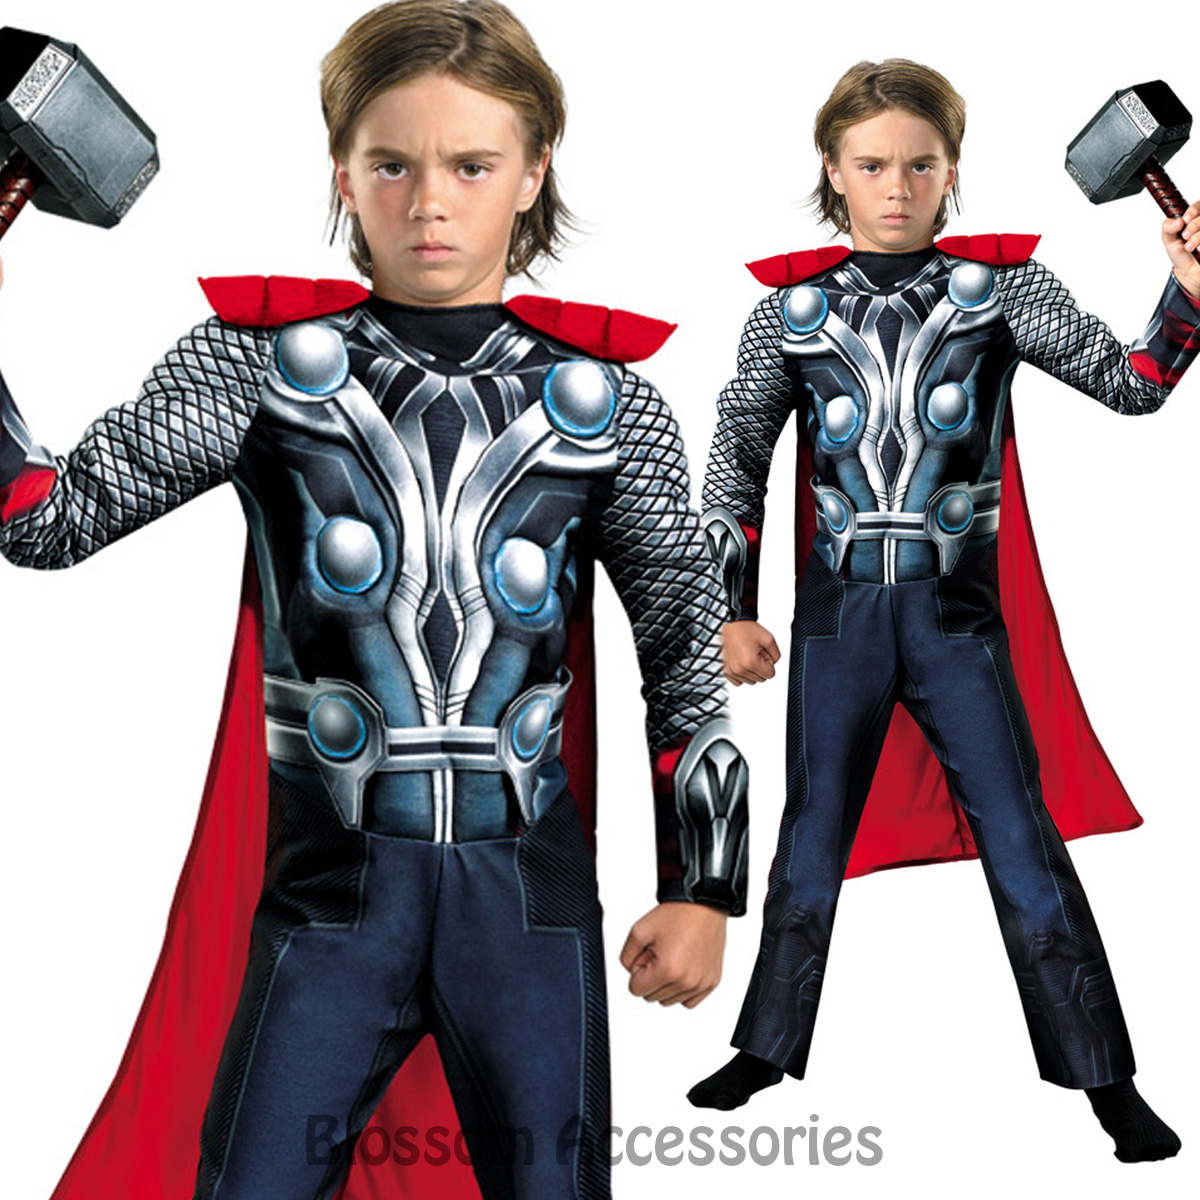 Image is loading CK709-Thor-Superhero-Hero-Avengers-Child-Boys-Kids-  sc 1 st  eBay & CK709 Thor Superhero Hero Avengers Child Boys Kids Fancy Dress Book ...